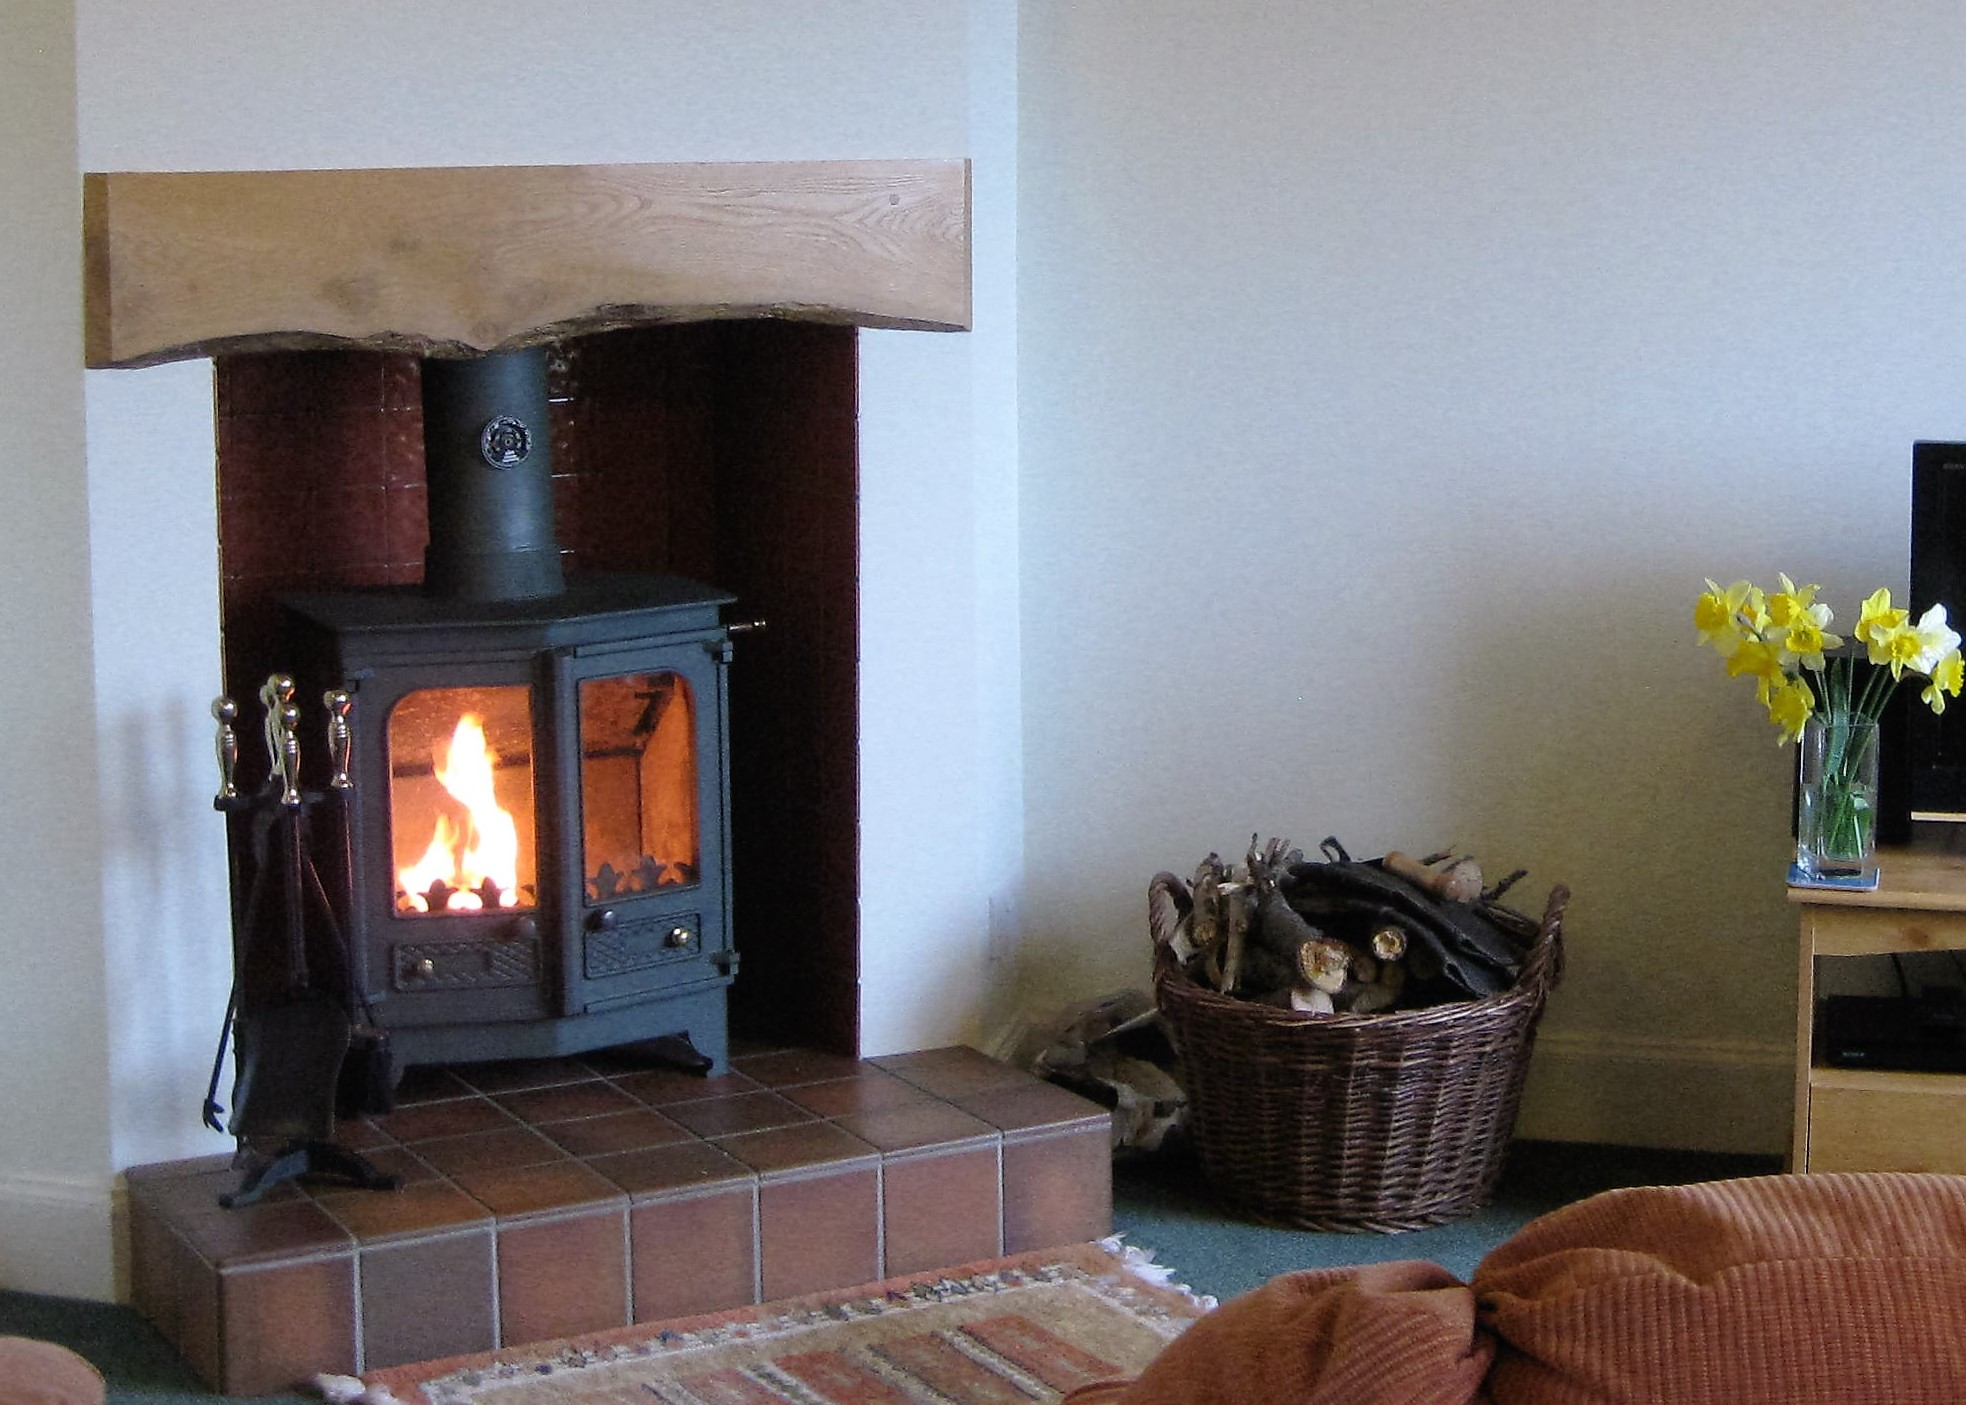 Wood burning stove in living room.